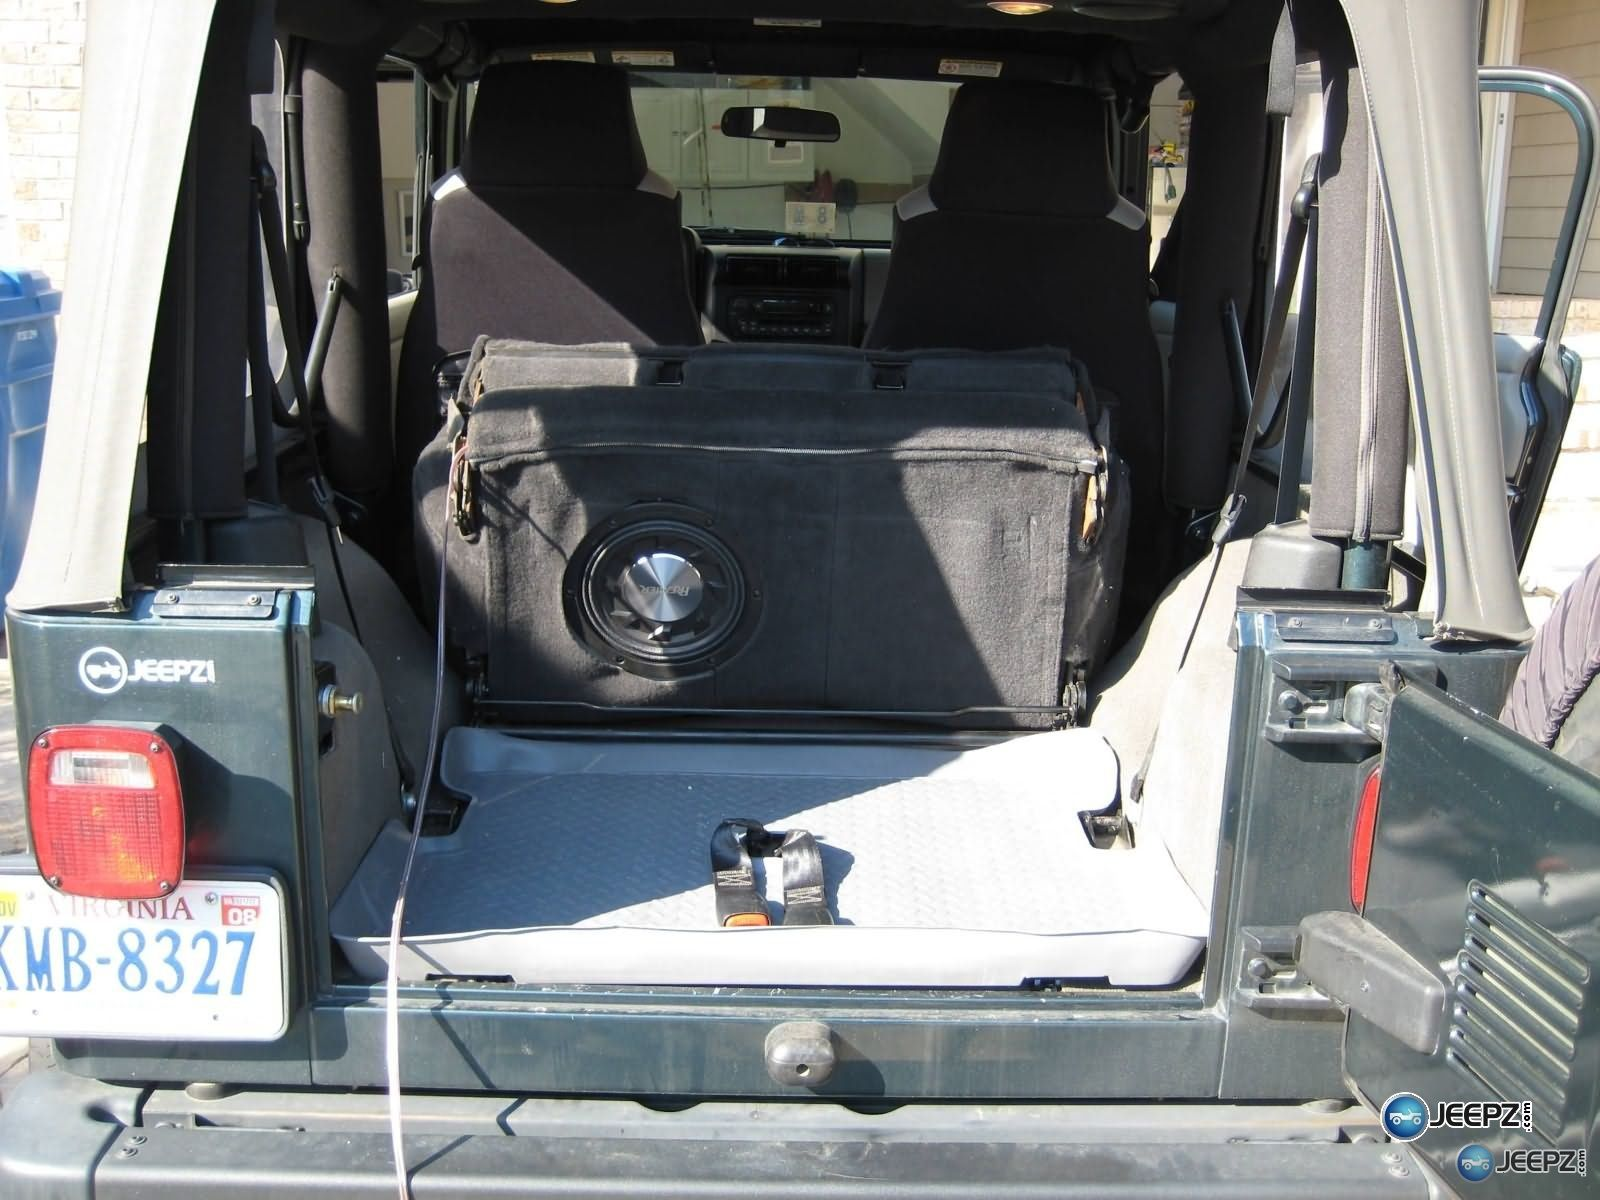 Subwoofer inside of a Jeep Wrangler rear seat Jeep